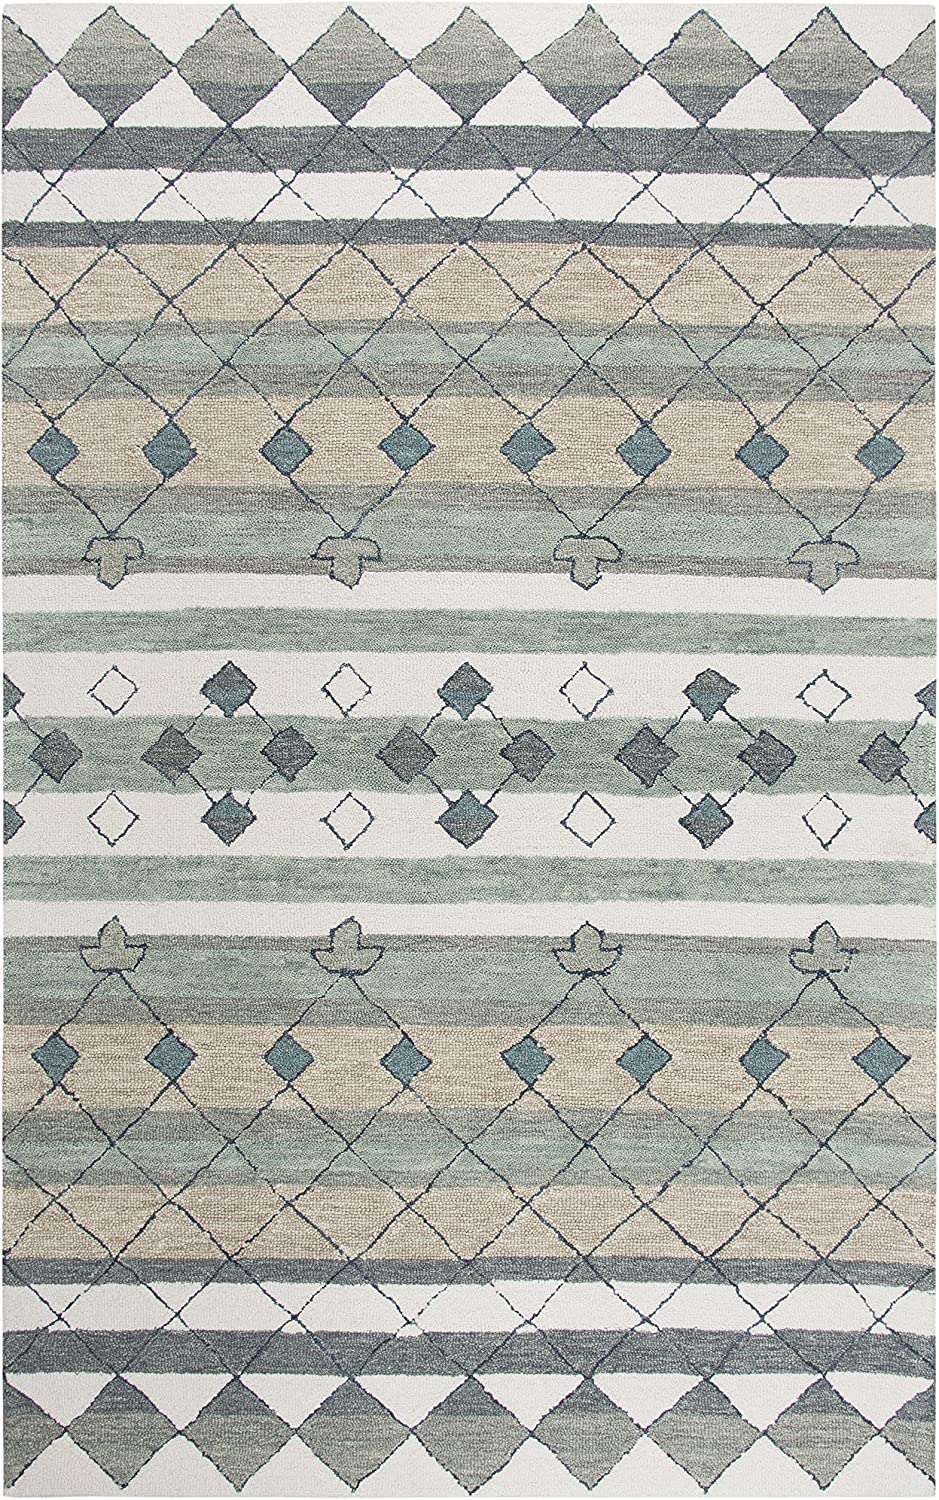 "Rizzy Home Resonant Collection Wool Area Rug, 2'6"" x 8', Gray/Ivory/Tan/Blue Gray/Sage Green/Dark Green Tribal Motif"